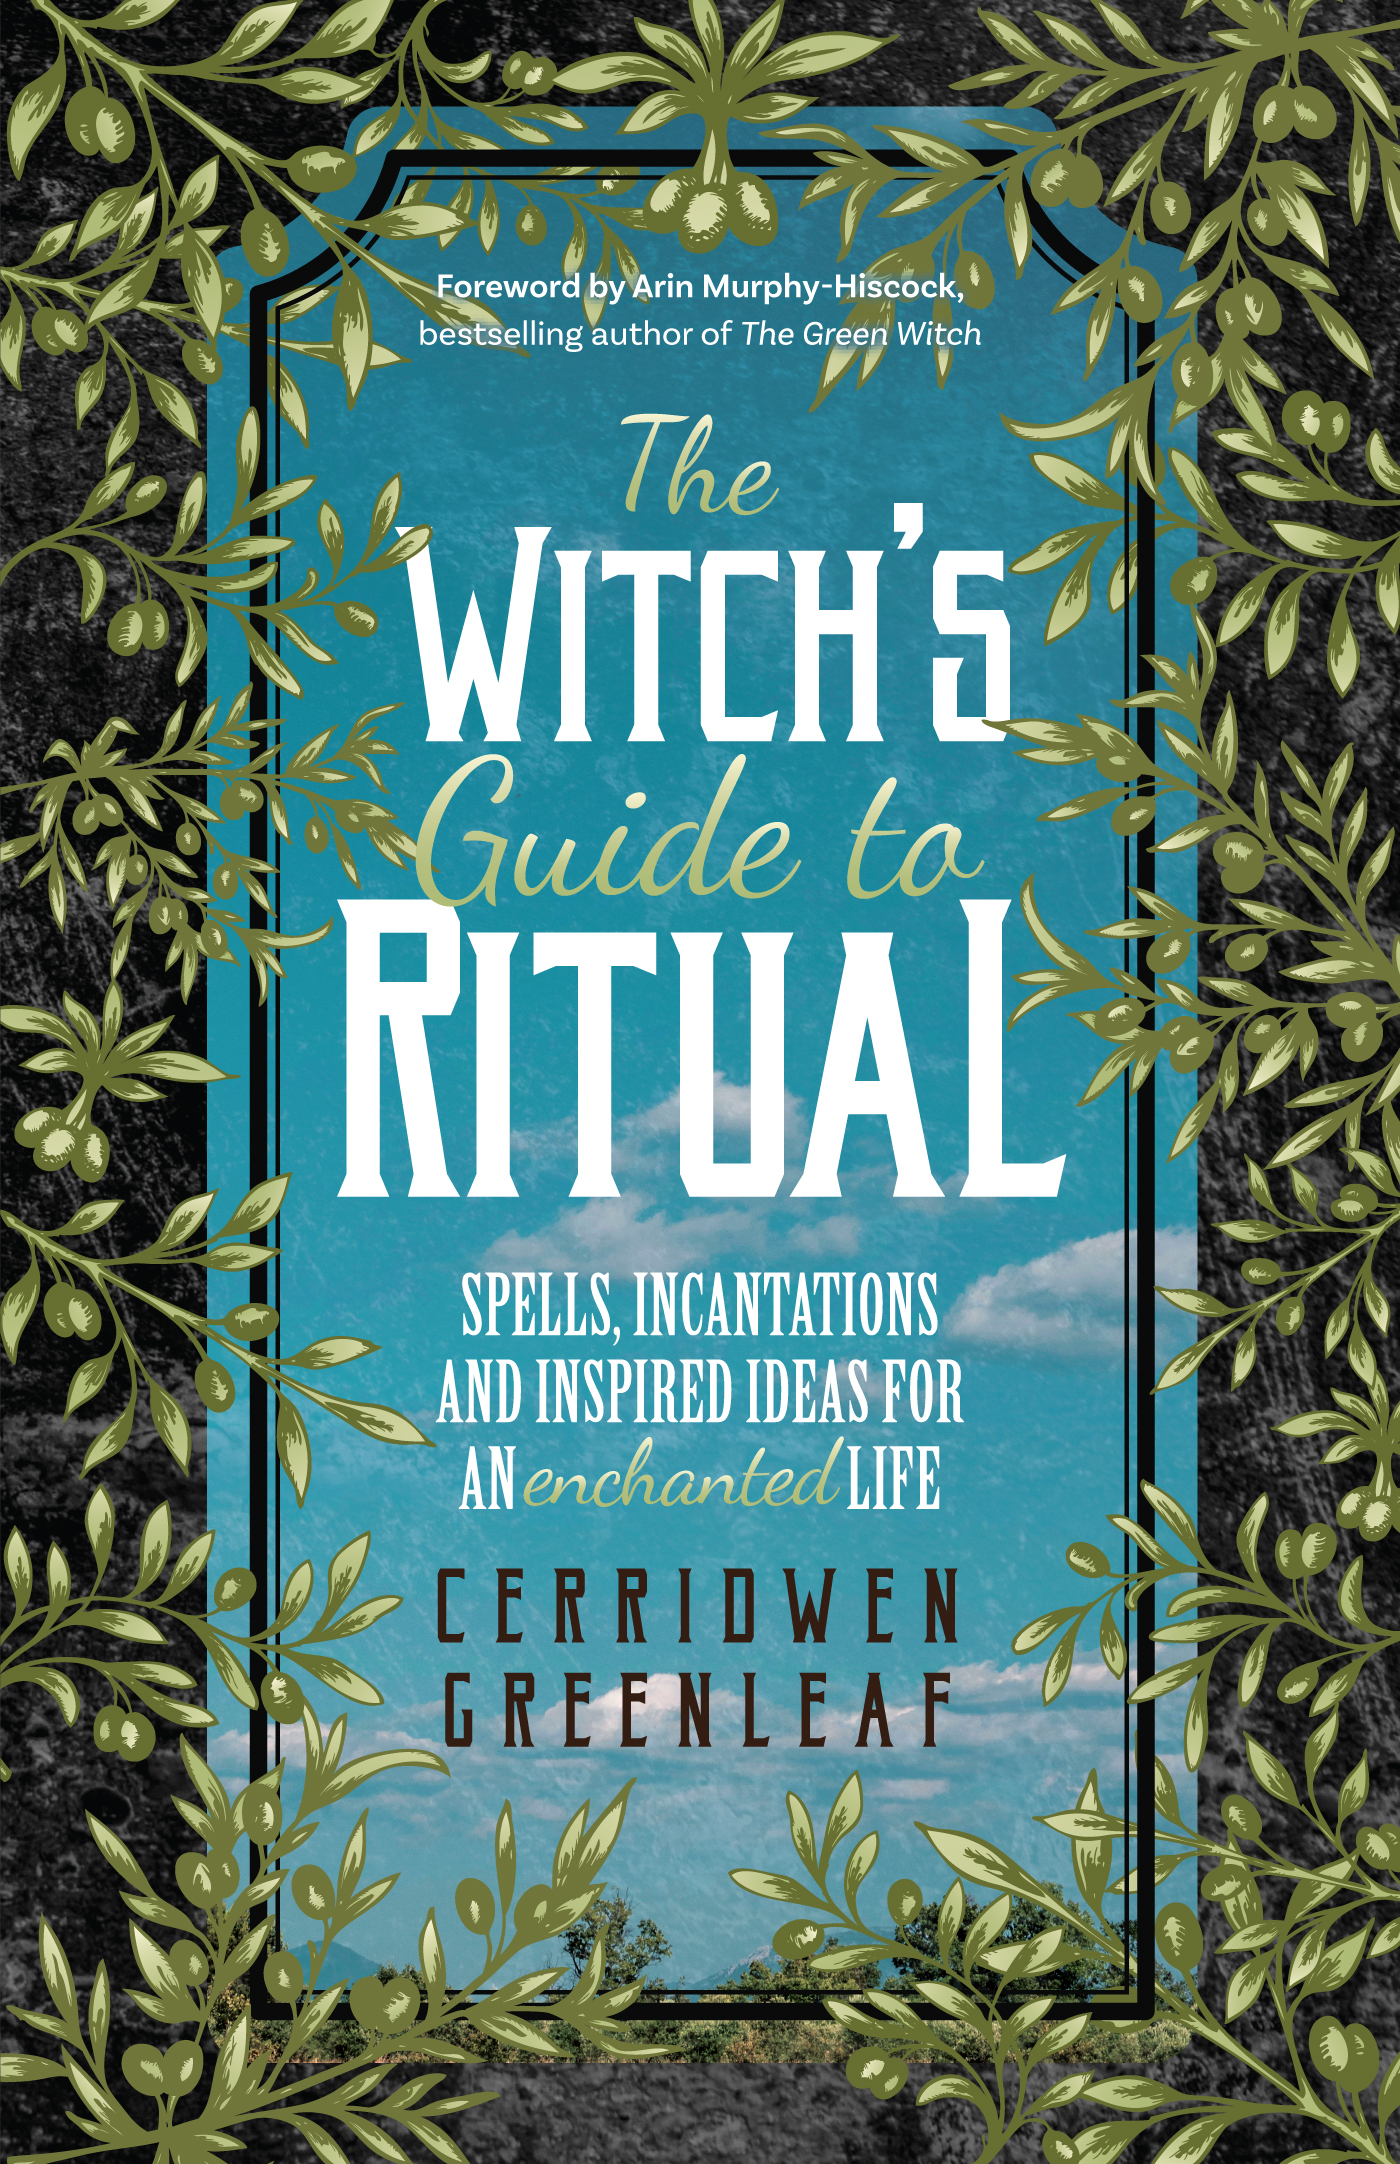 The Witch's Guide to Ritual